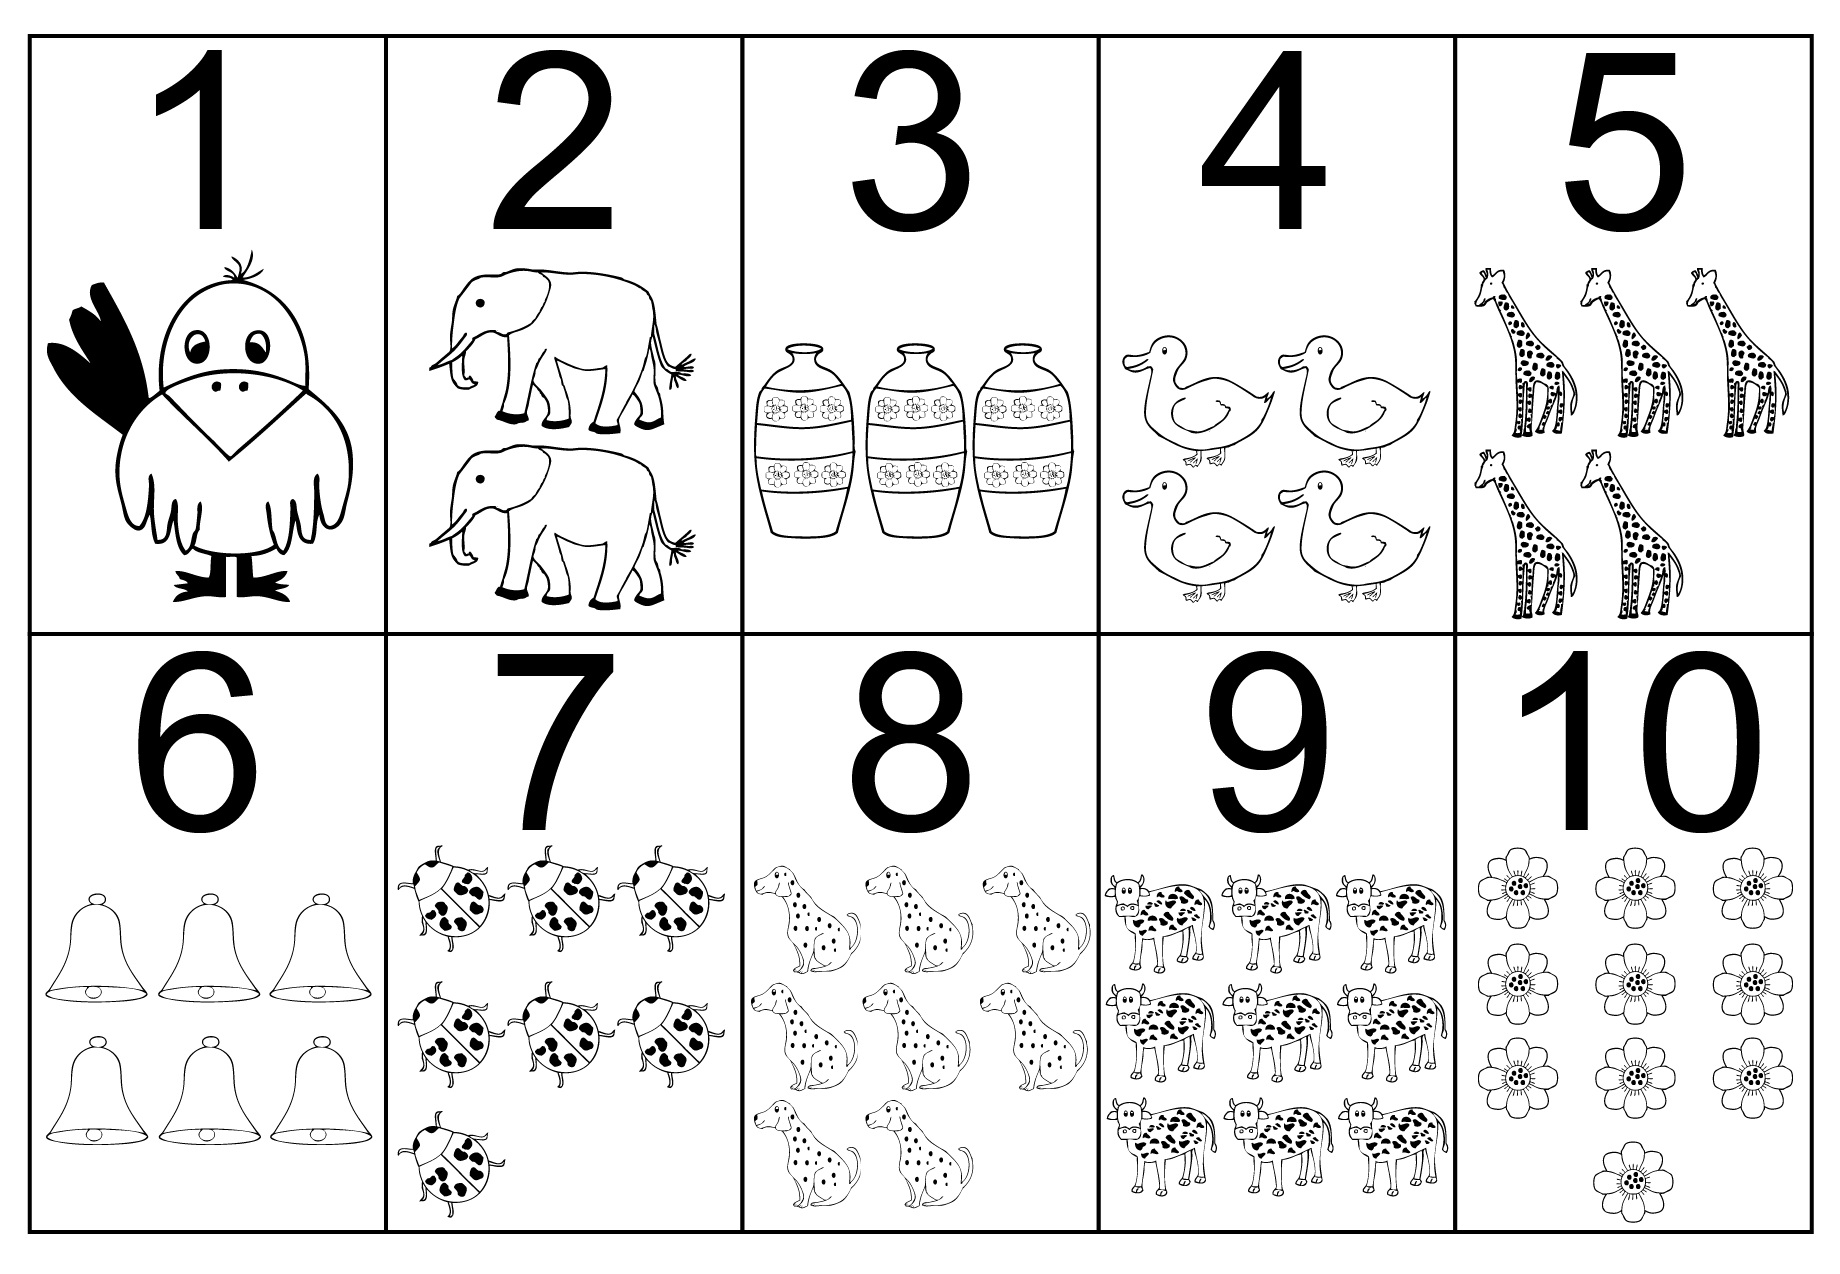 Coloring pages by numbers for kids - Coloring Number Pages